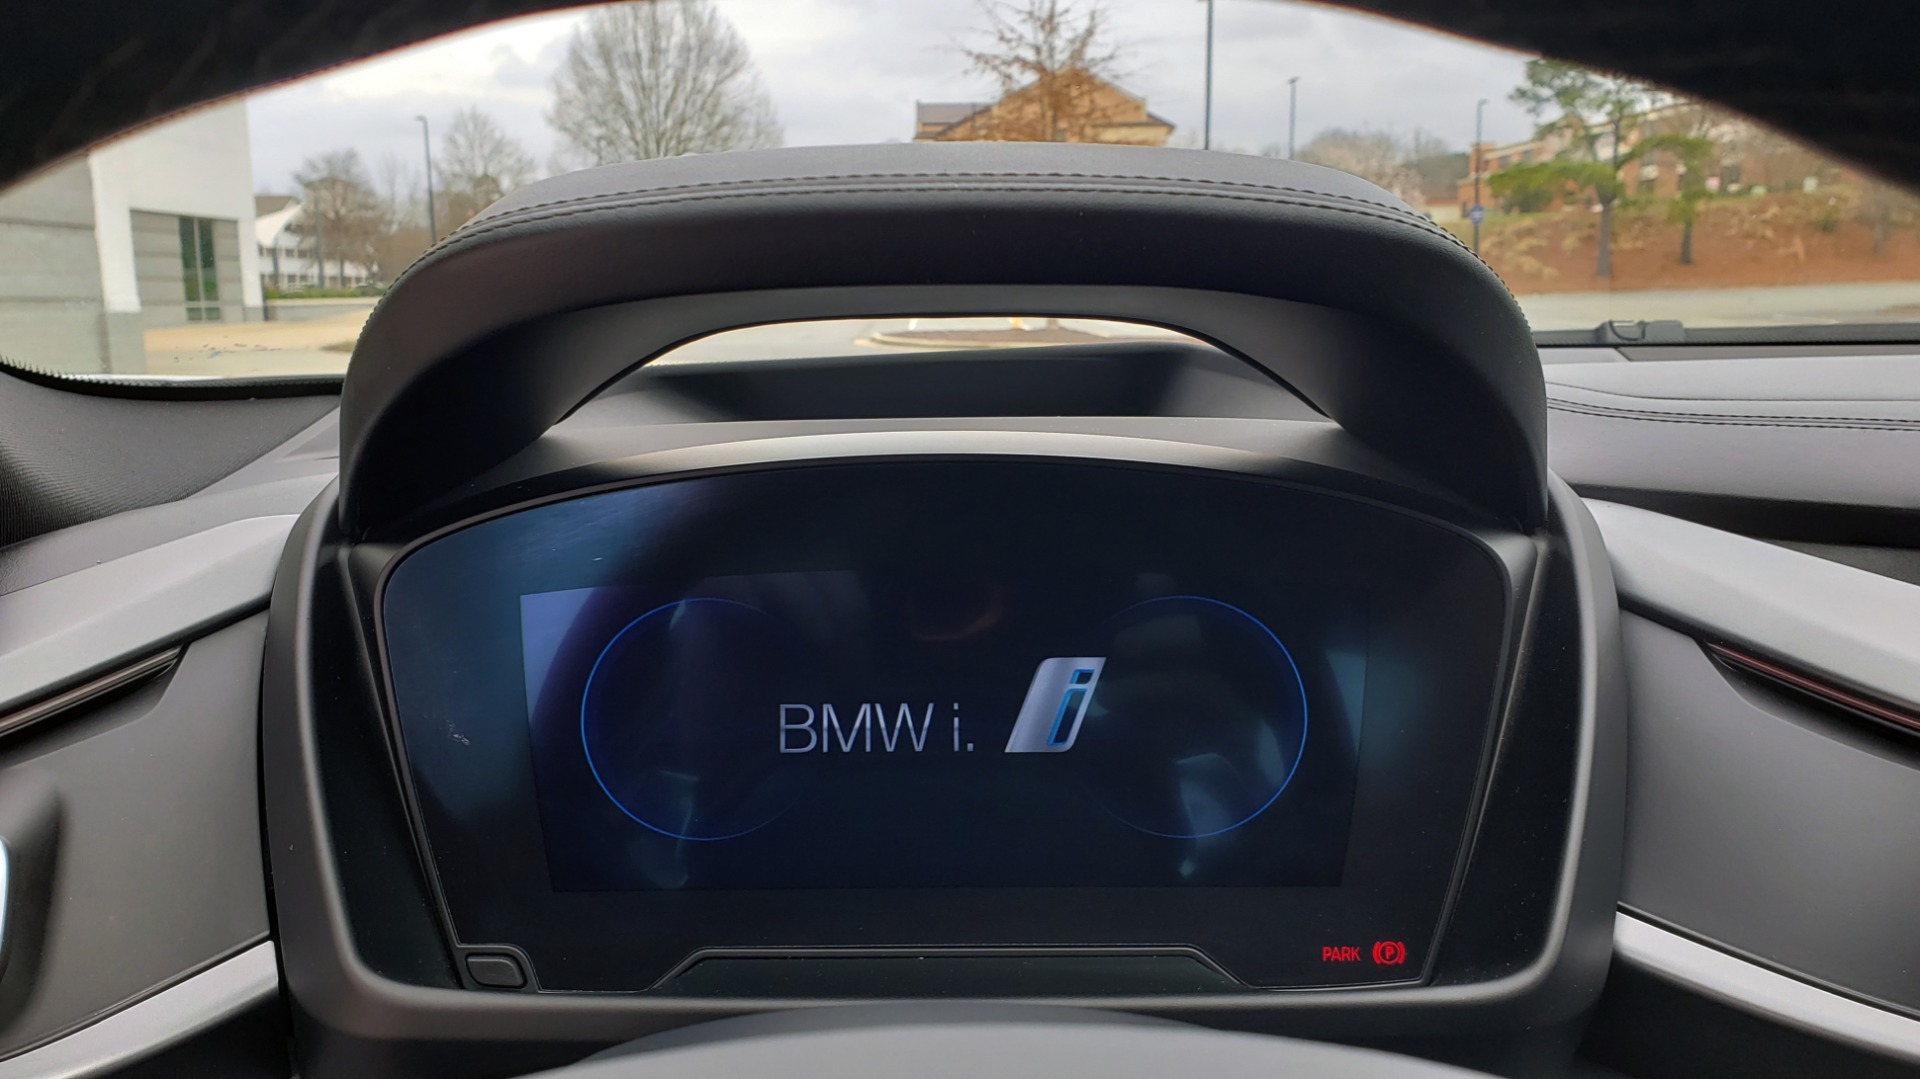 Used 2016 BMW i8 COUPE / GIGA WORLD / NAV / HUD / 20IN WHEELS / REARVIEW for sale Sold at Formula Imports in Charlotte NC 28227 24